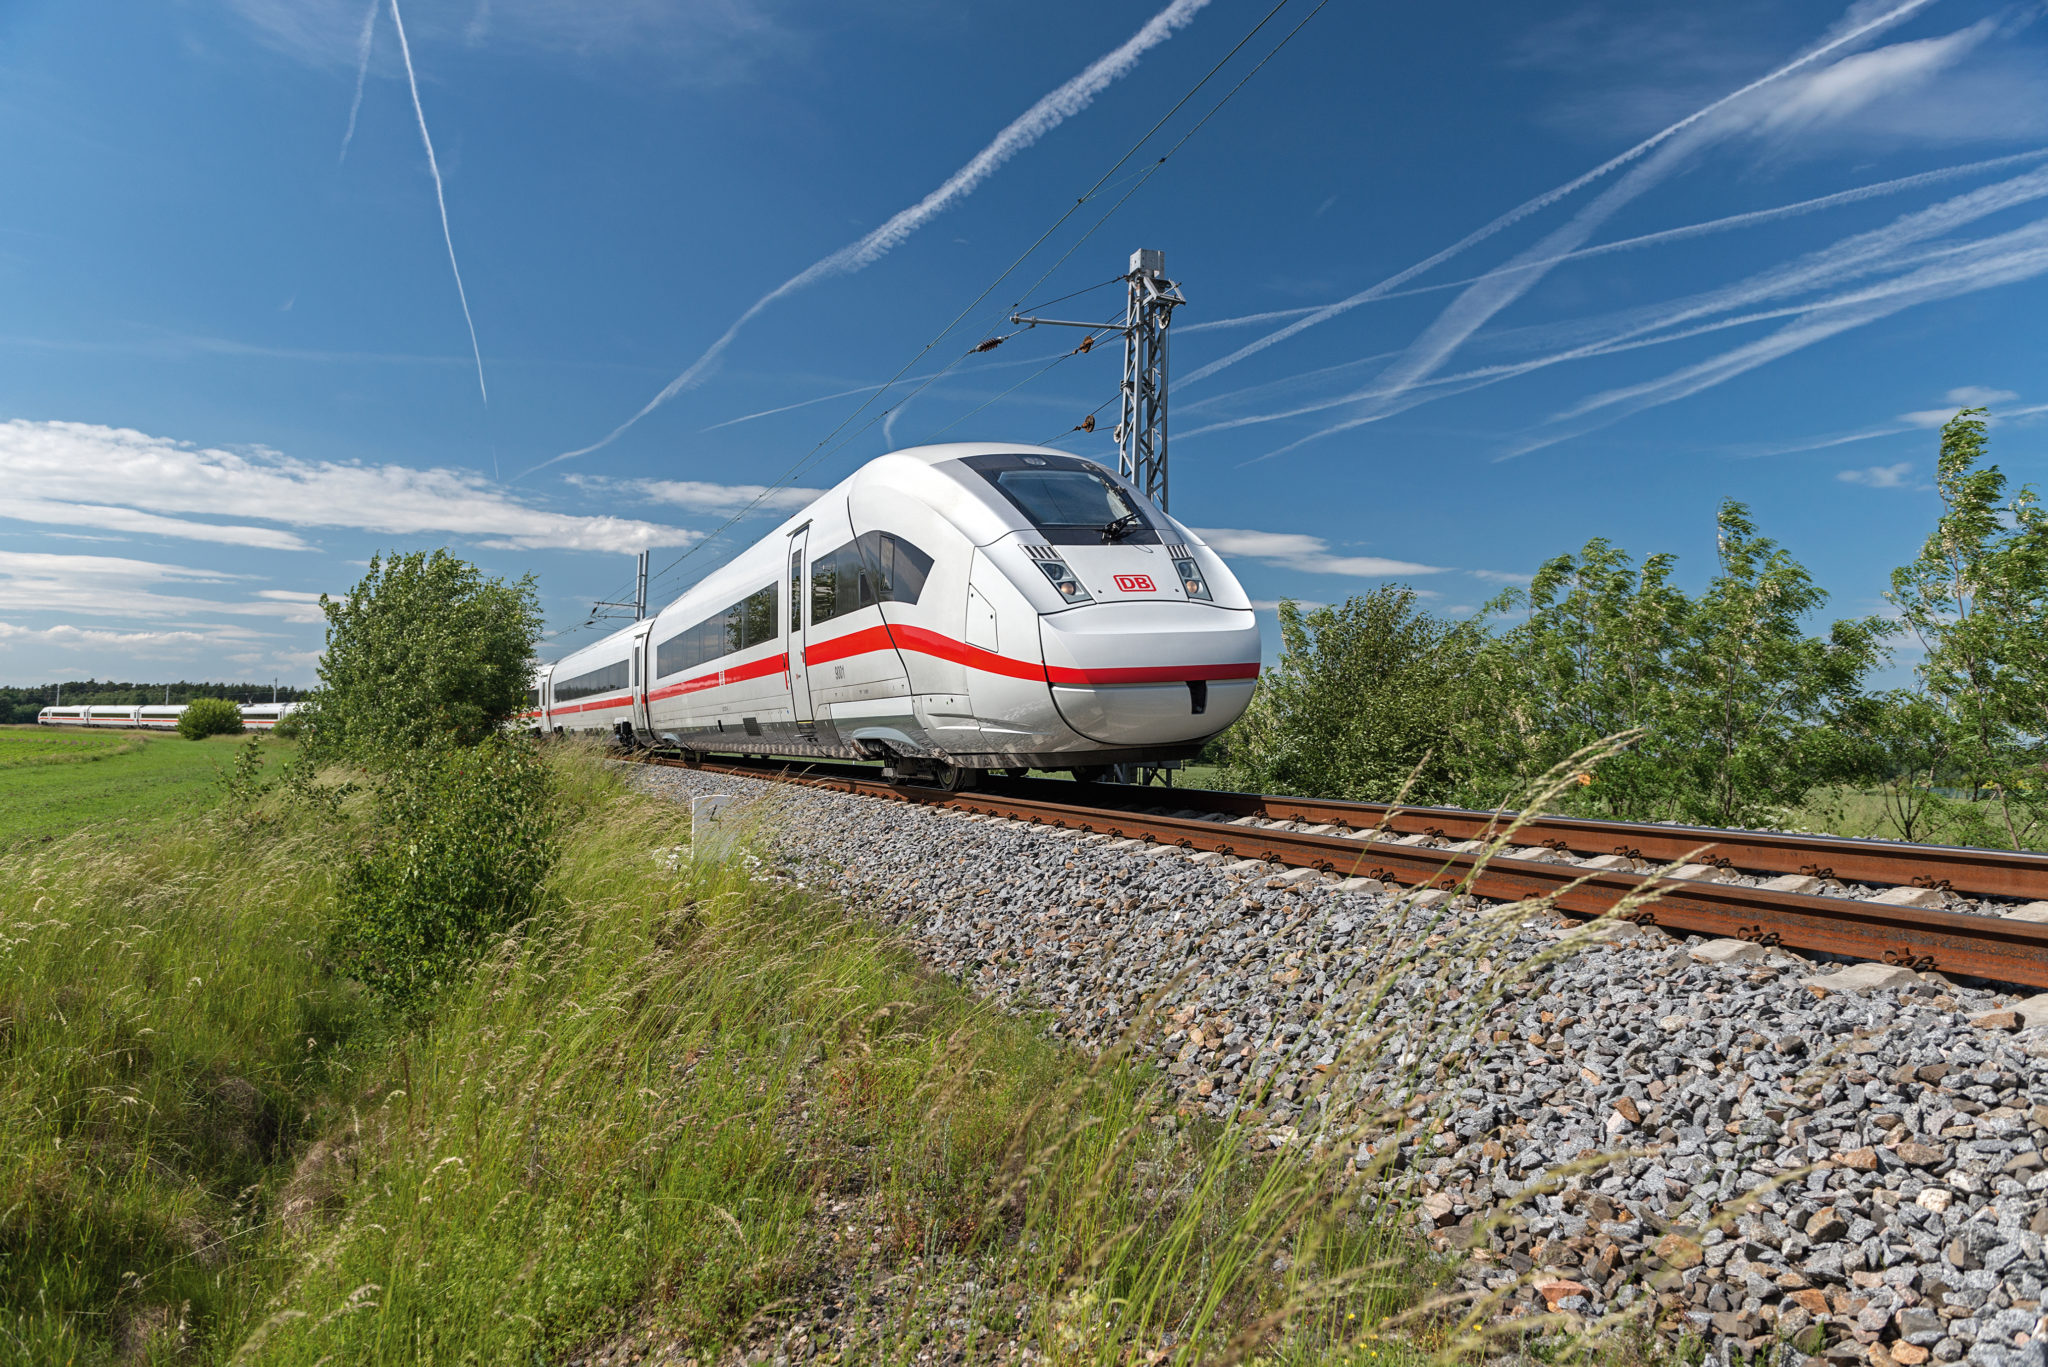 DB ICE 4 trains are the flagship high-speed long-distance trains in Germany